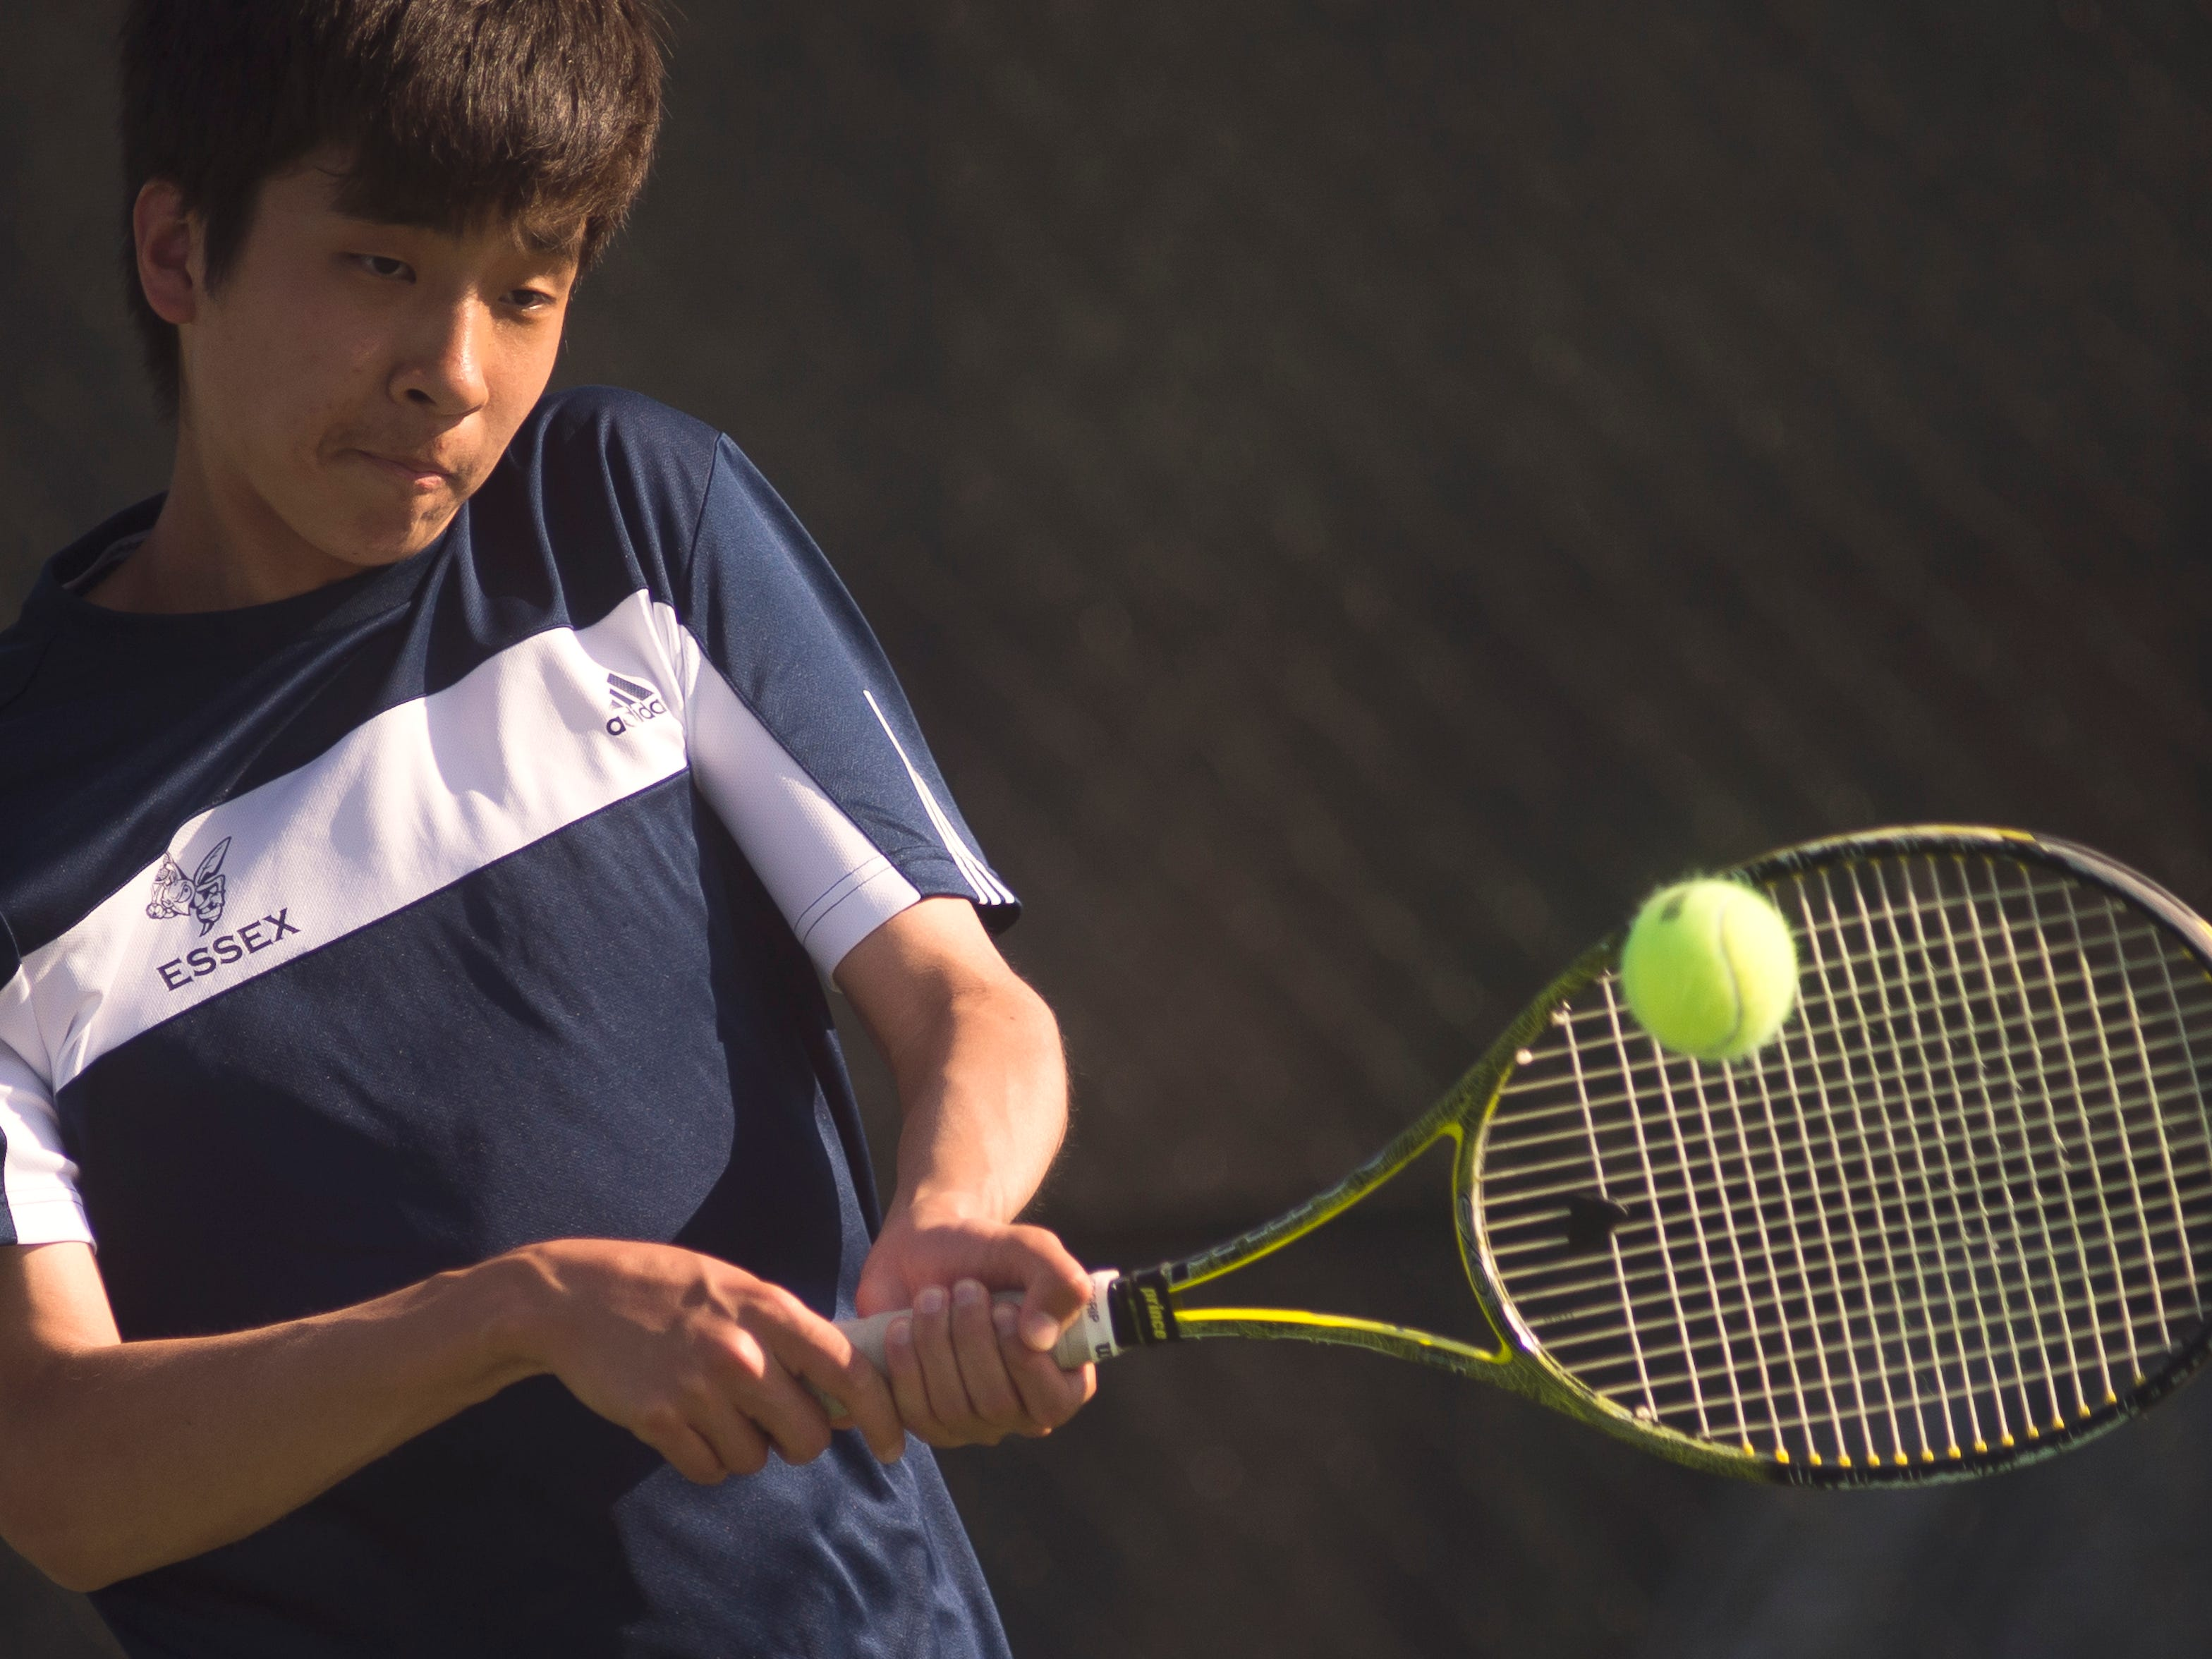 Essex second seed Daniel Ro smashed a back hand return to his St. Johnsbury opponent Salomon Zaga during their tennis match up at Essex High School Wednesday.